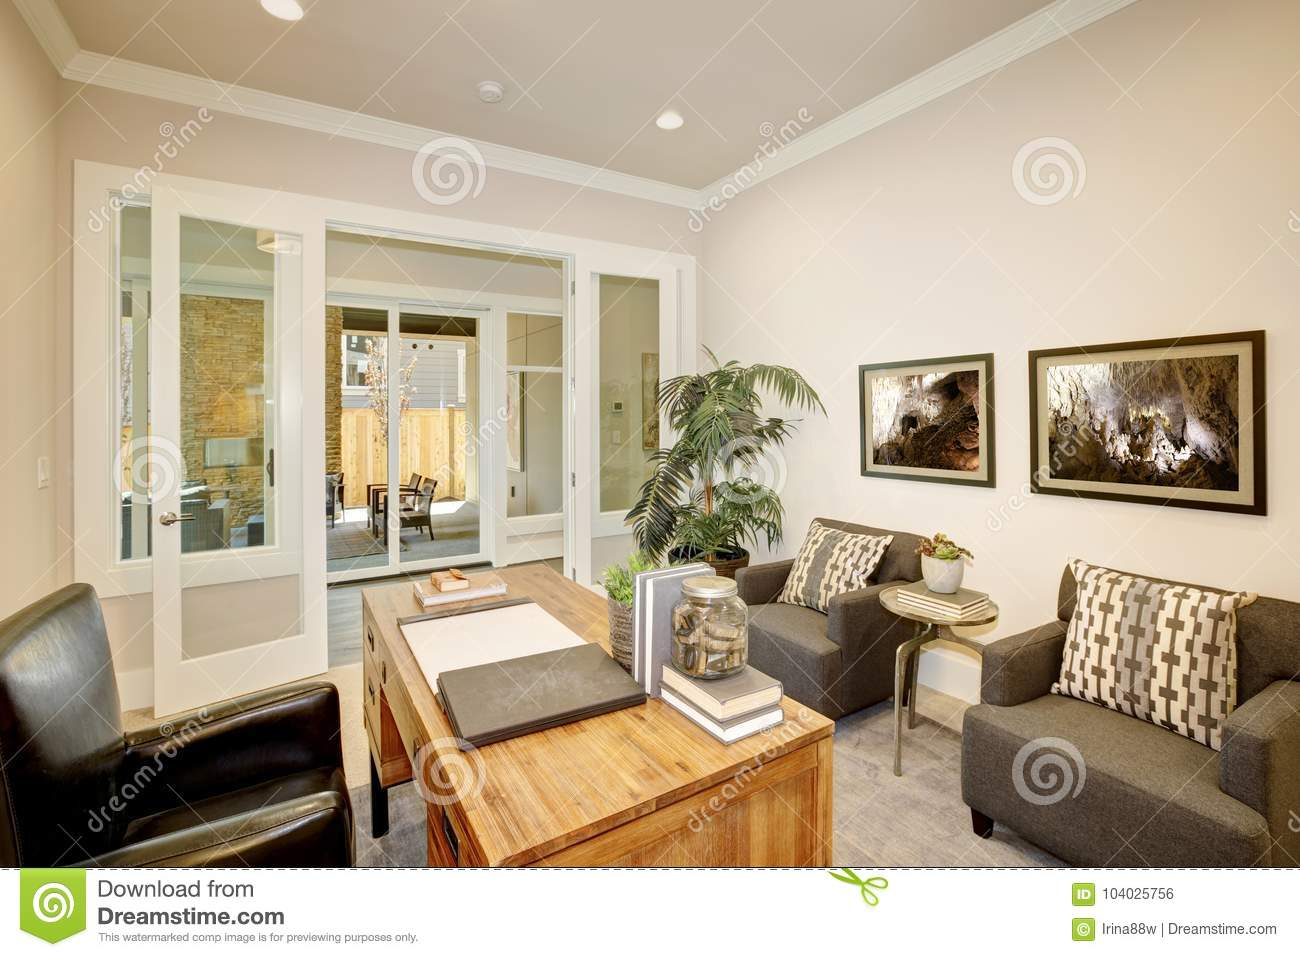 Light Home Office Features A Wooden Desk Placed In The Center Of The Room  On A Gray Rug In Front Of Two Comfortable Armchairs Topped With Geometric  White ...